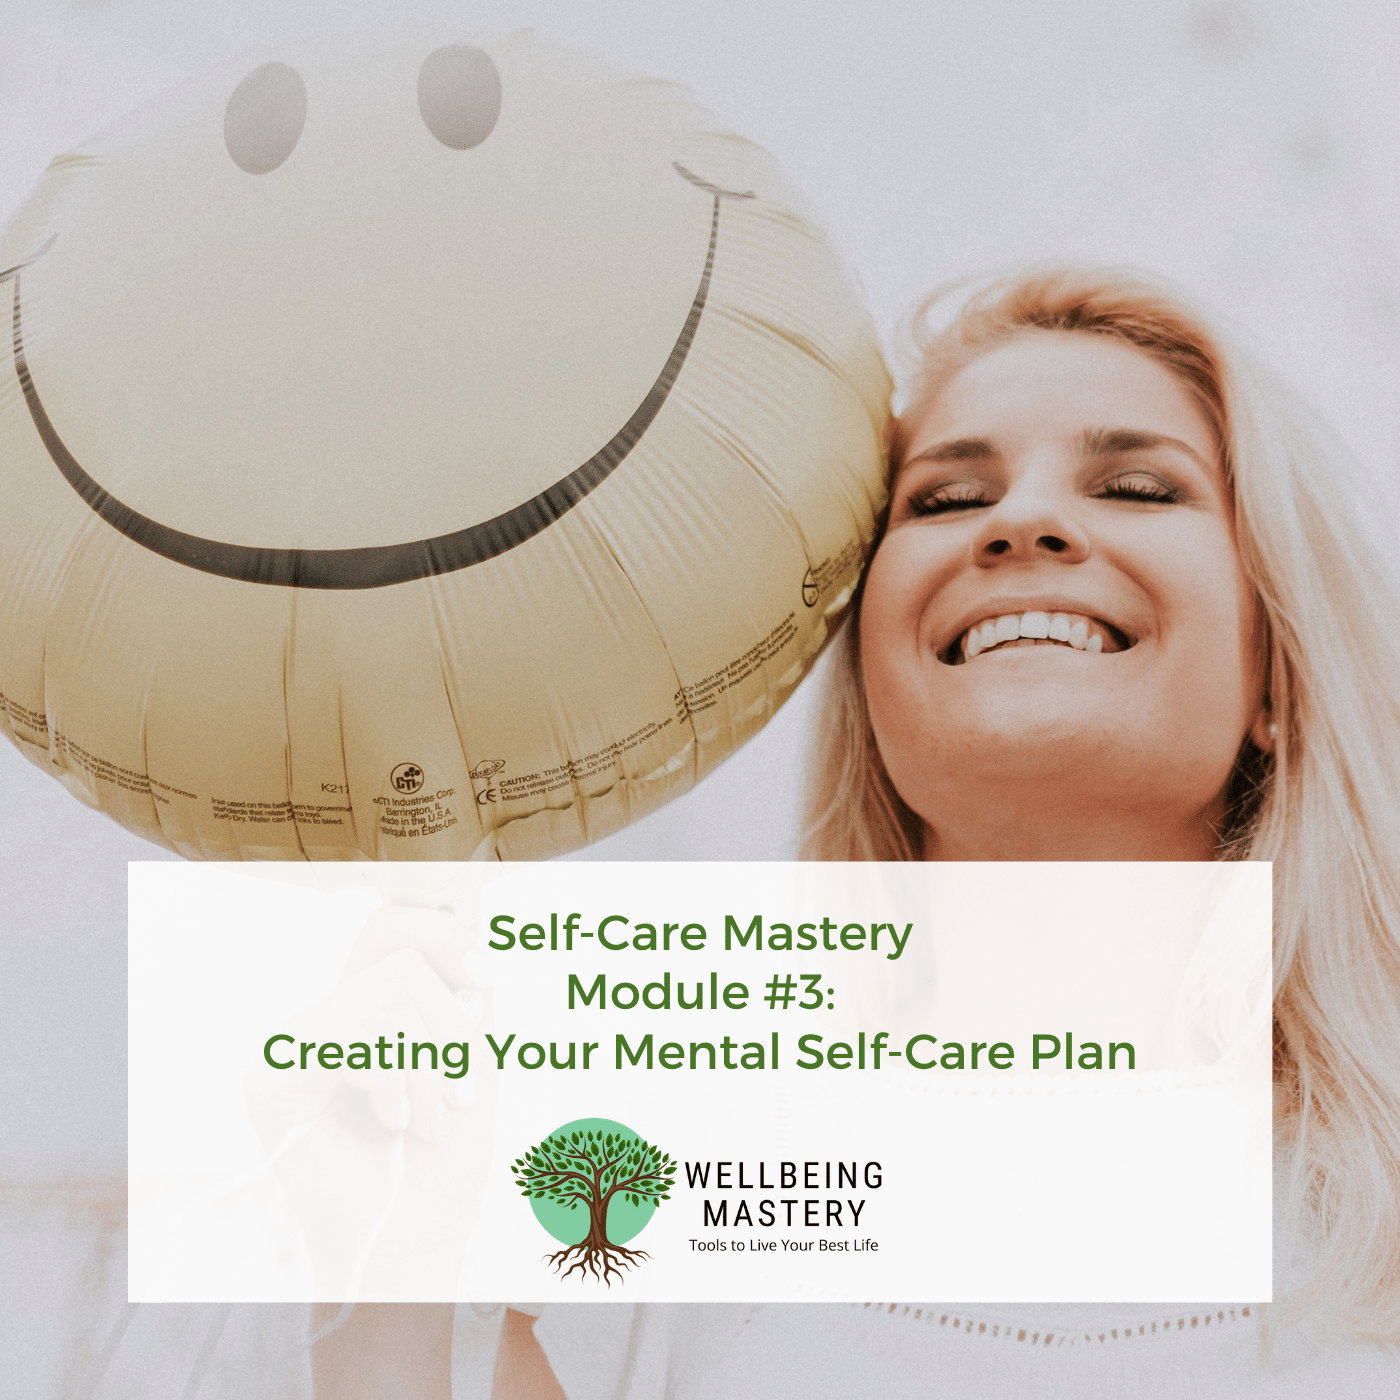 Mental self care tips so you can improve sleep, manage stress and anxiety